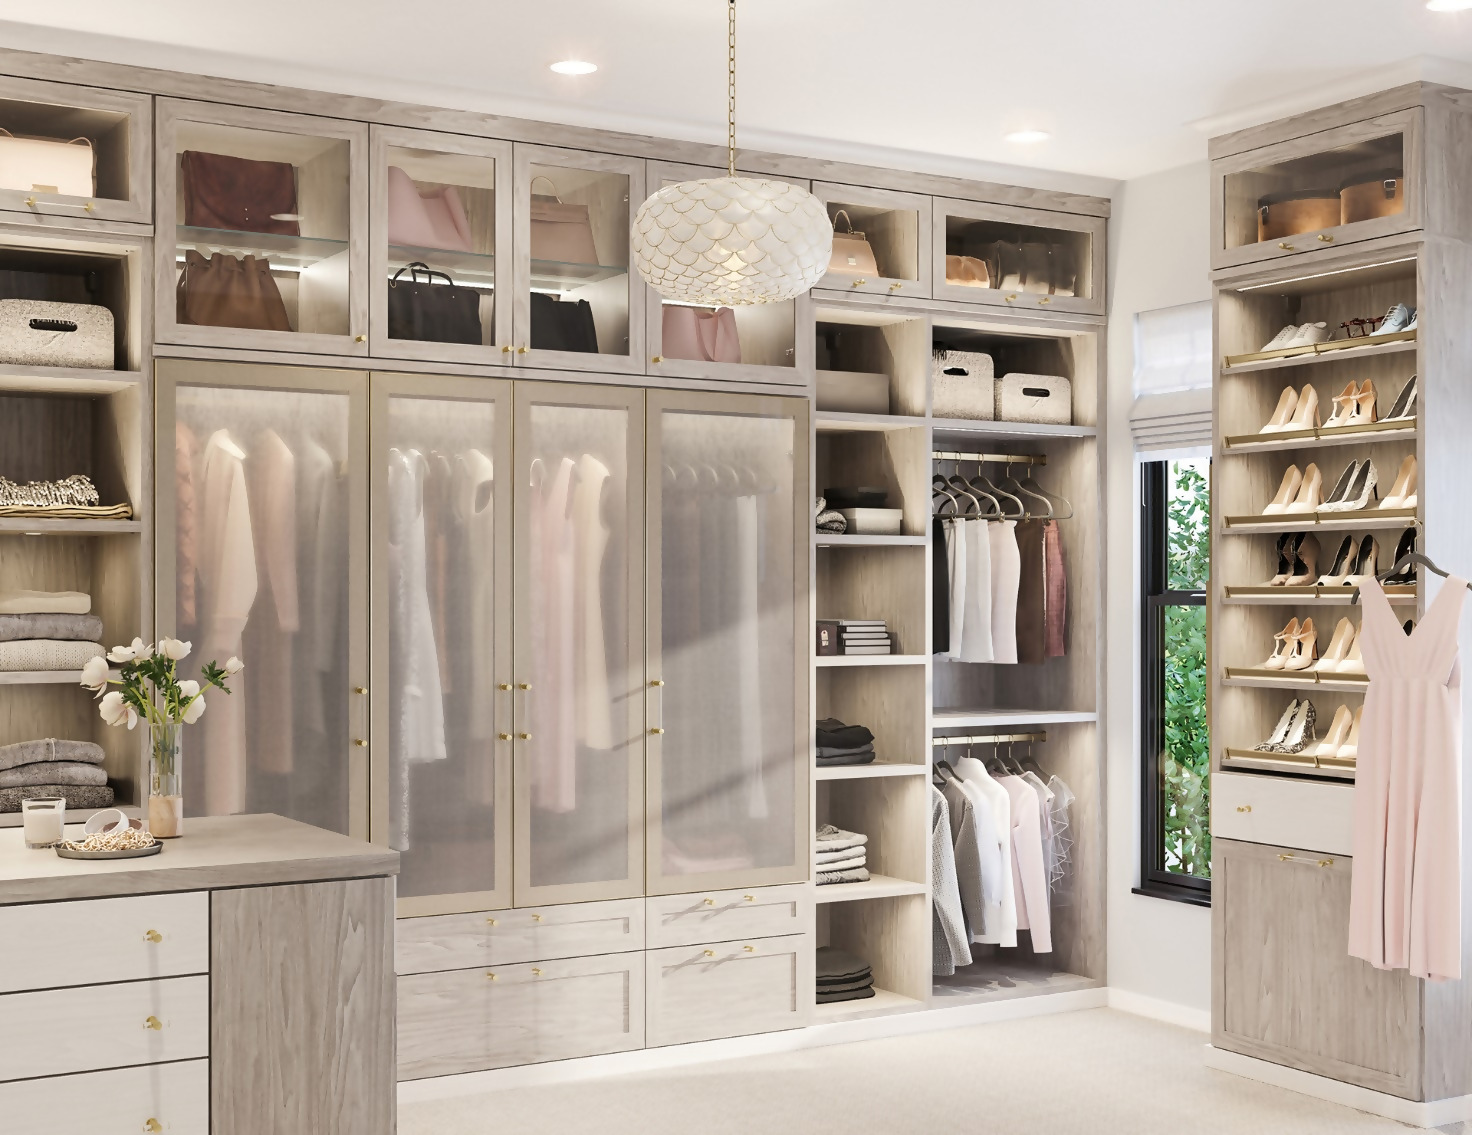 Walk-In Closet In A Larger Room